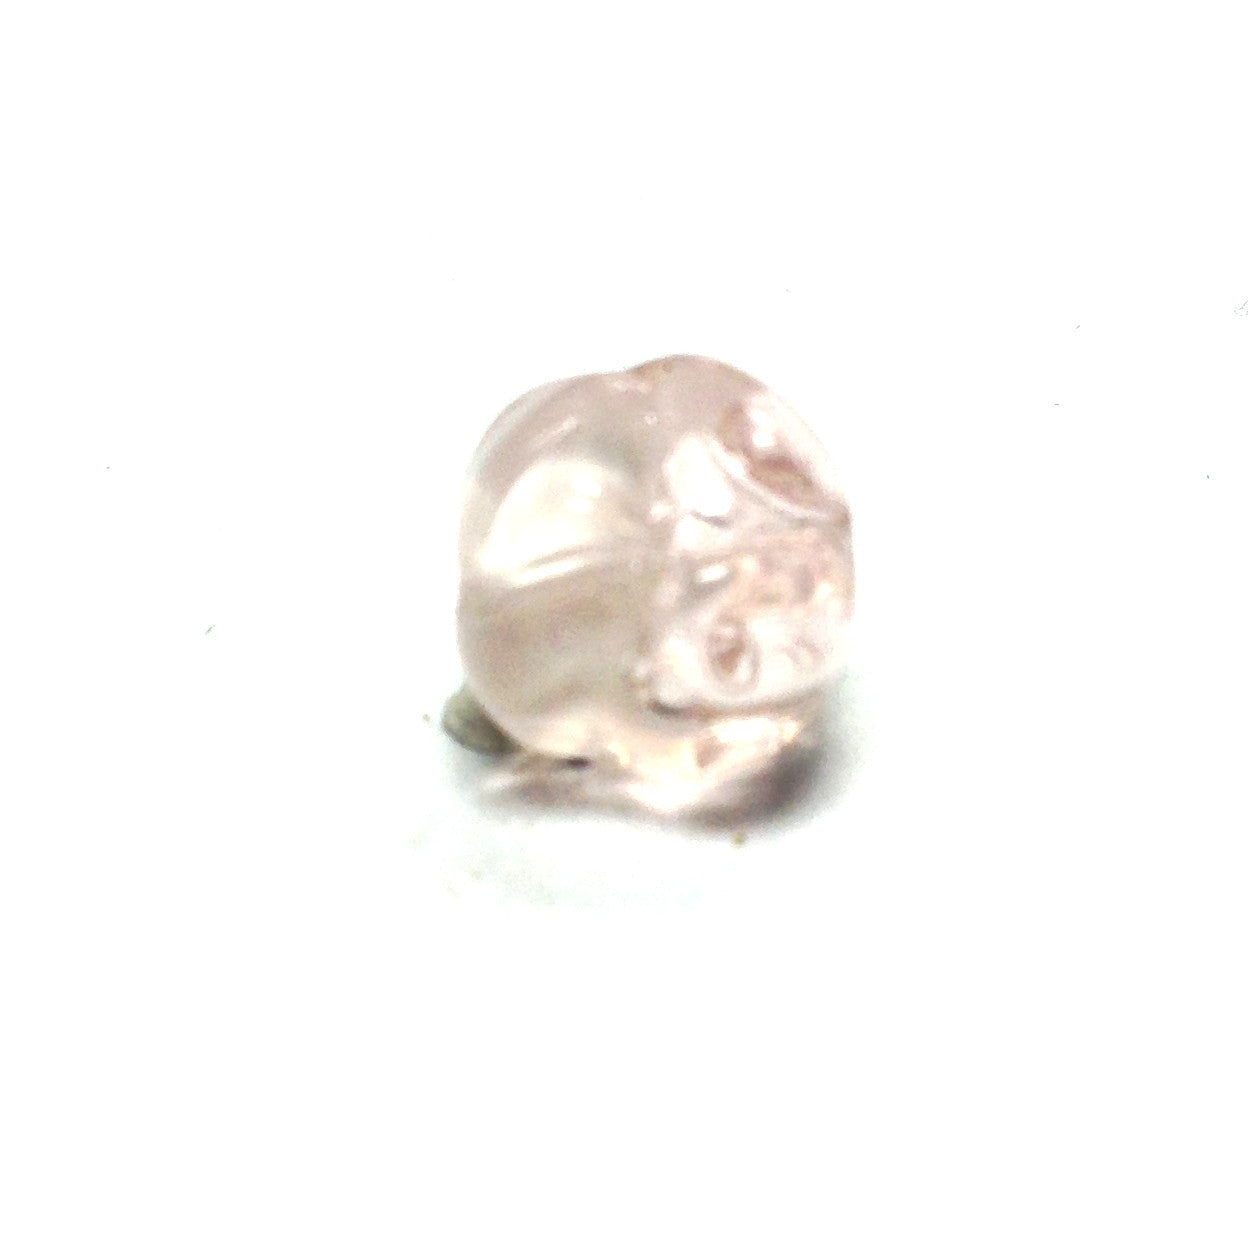 6MM Pink Glass Givre Nugget Bead (144 pieces)